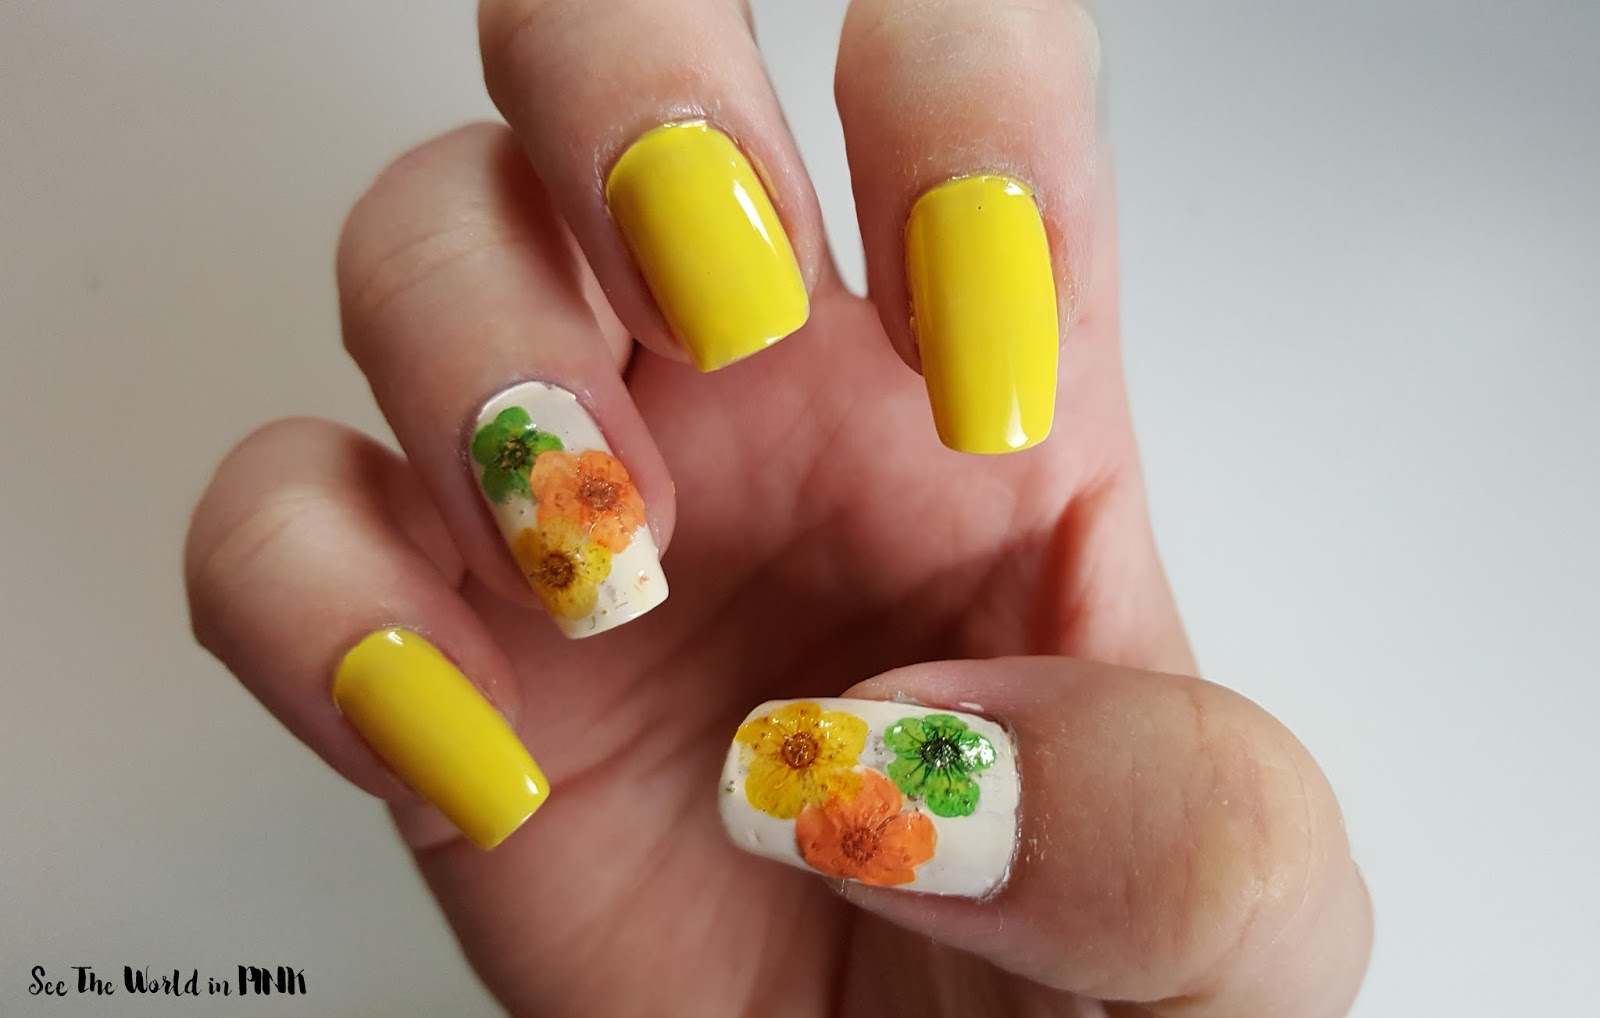 Manicure Tuesday - Pressed Flower Manicure!